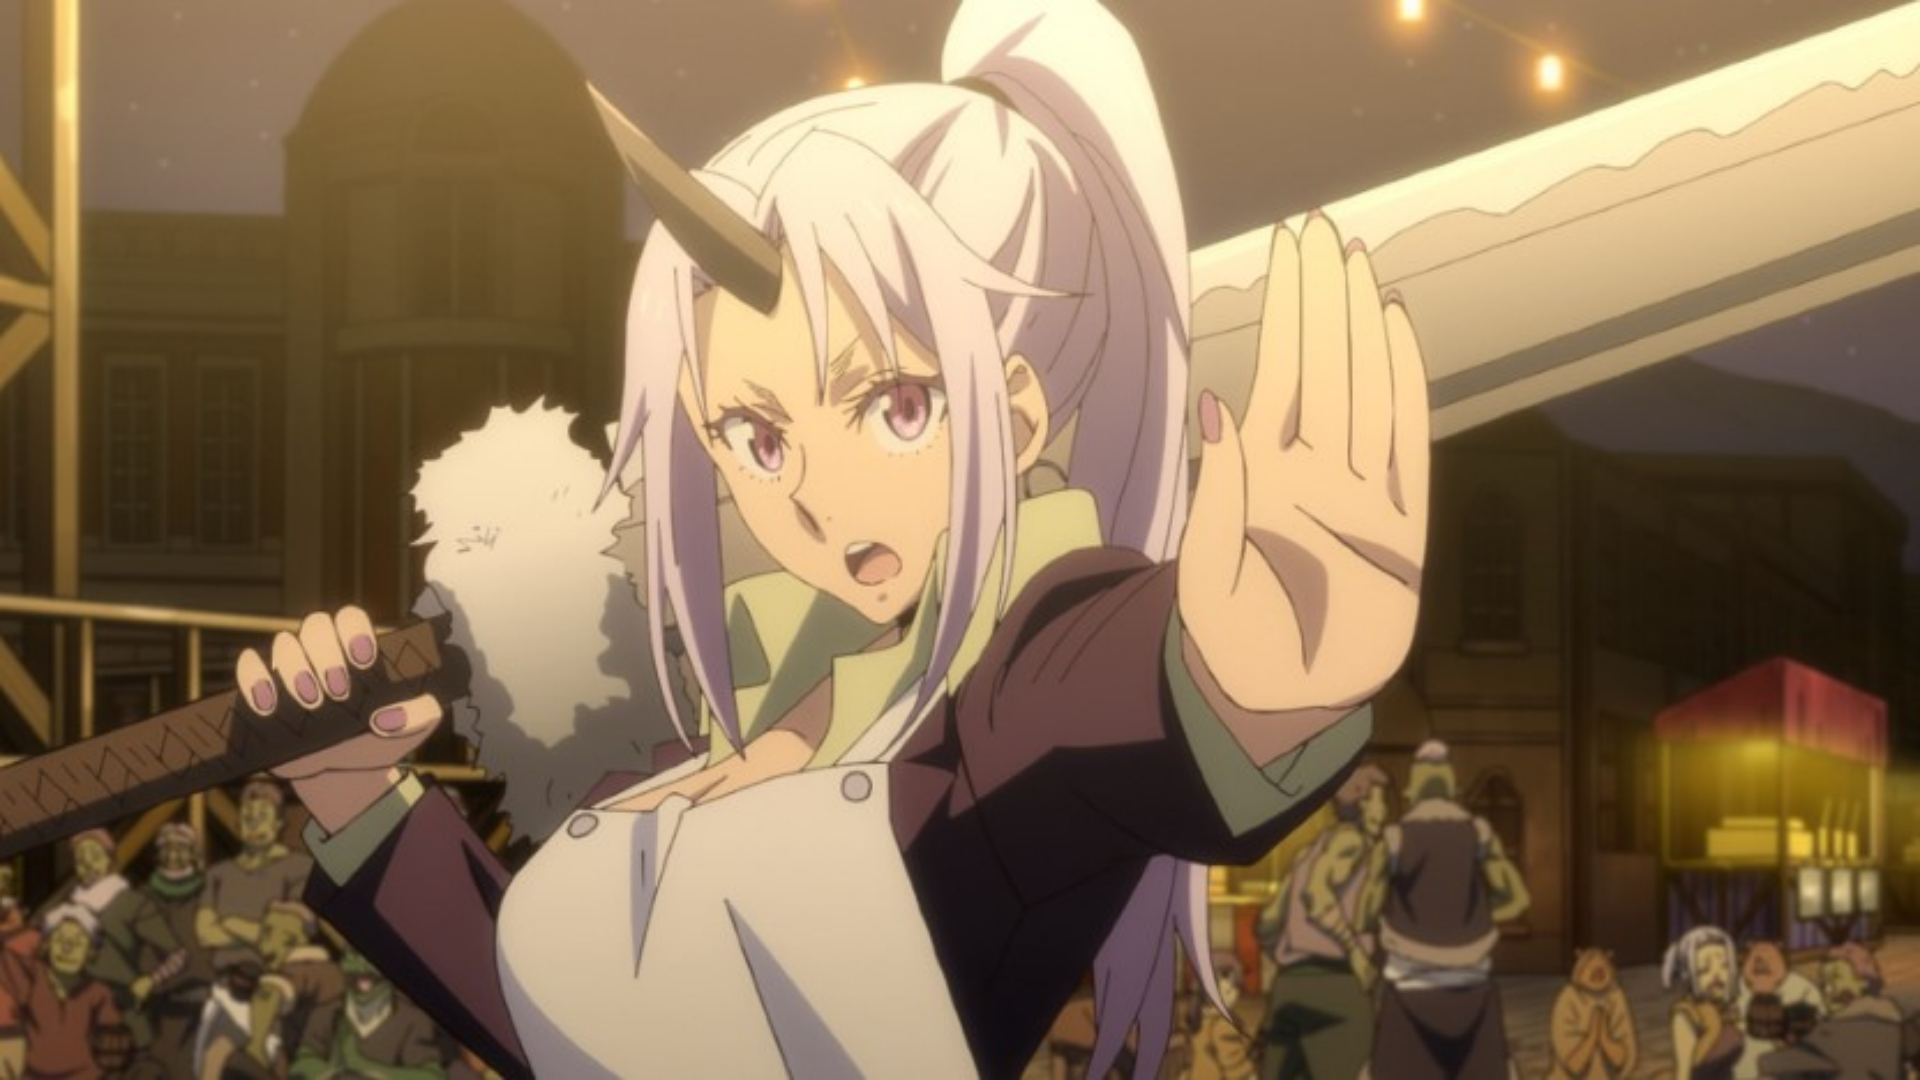 That Time I Got Reincarnated as a Slime Episode 37 Preview